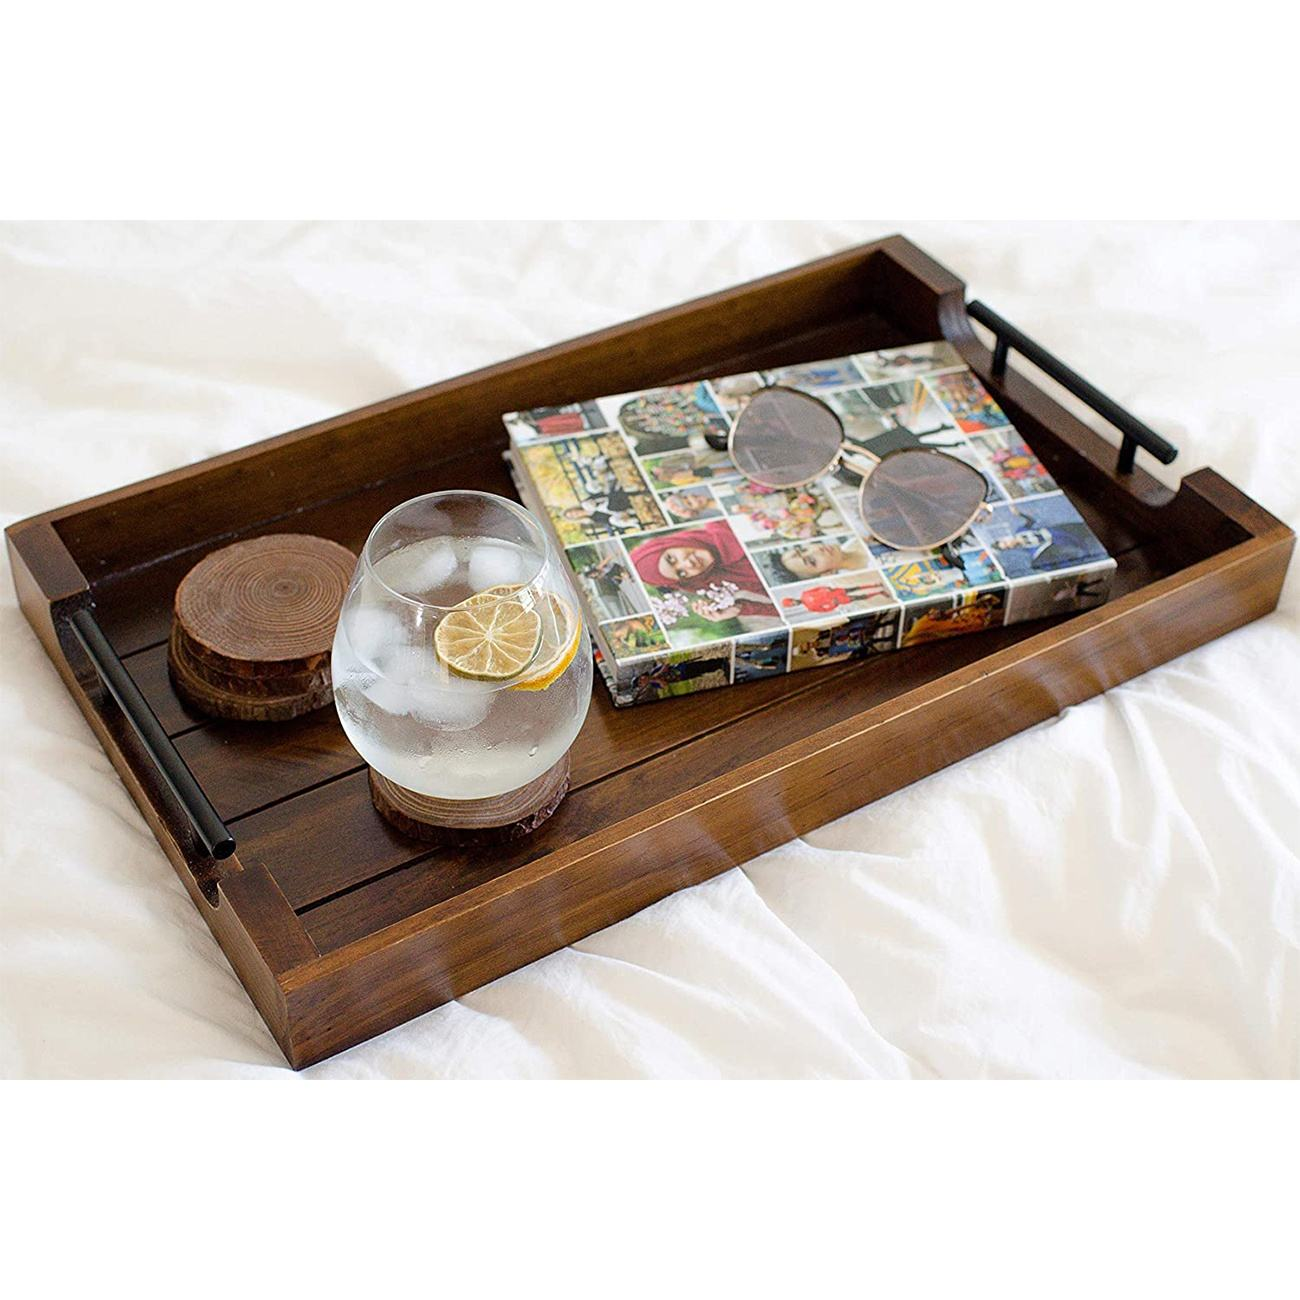 Wooden Rustic Tray for Ottoman Coffee Table Decor Serving Kitchen Tray with Metal Handles Farmhouse Trays With 4 Coaster